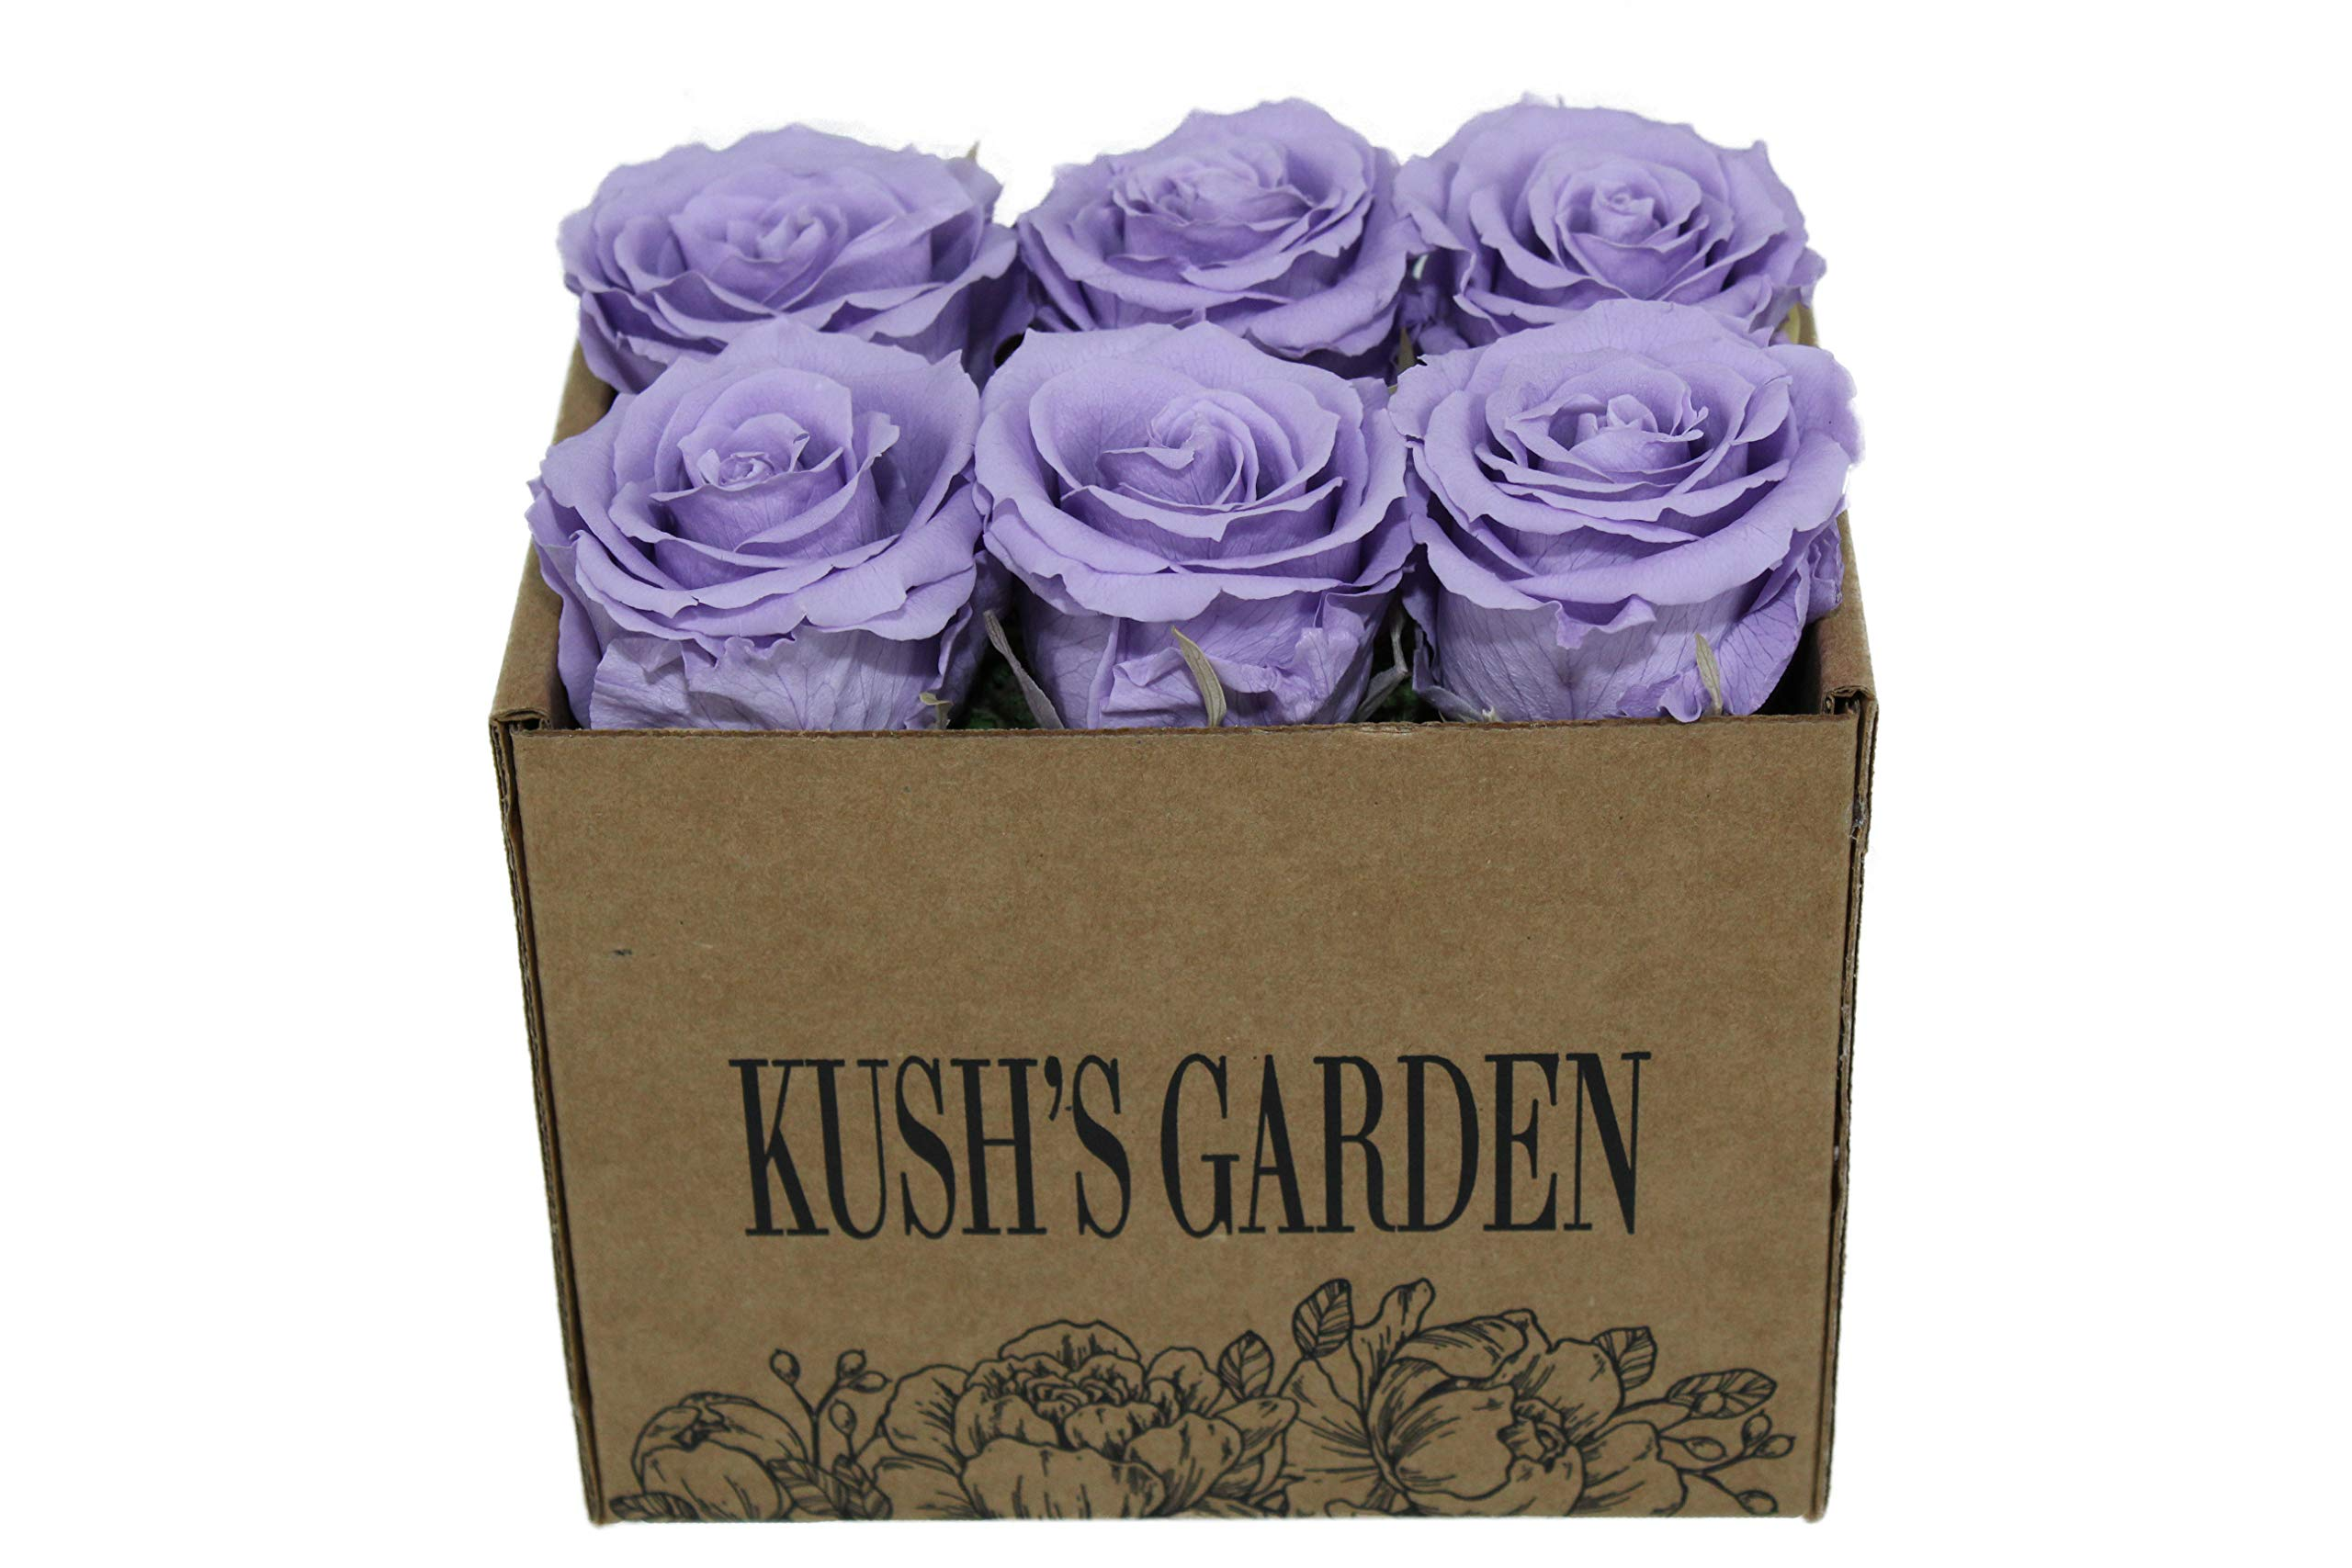 KUSHS GARDEN Real Preserved Roses in Box (Purple Haze) by KUSHS GARDEN